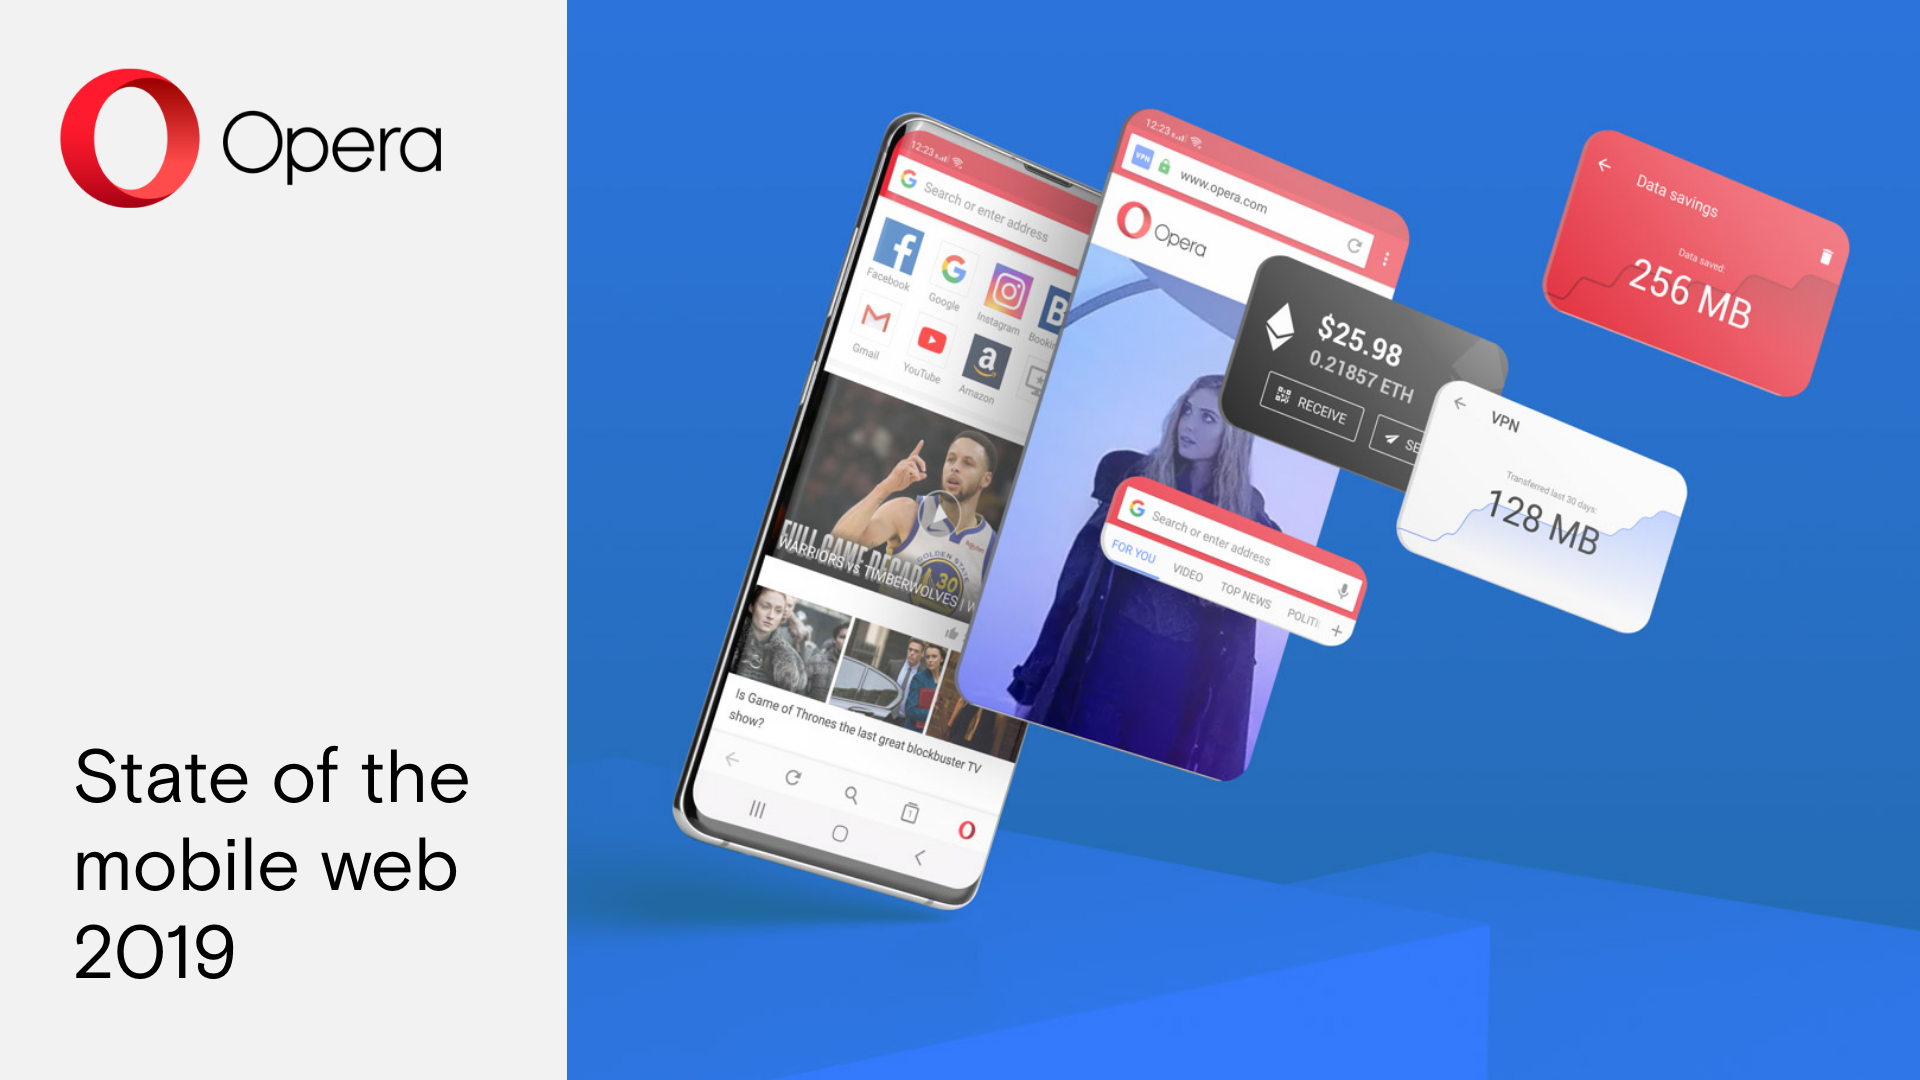 Opera presents the State of Mobile Web report 2019 for Africa